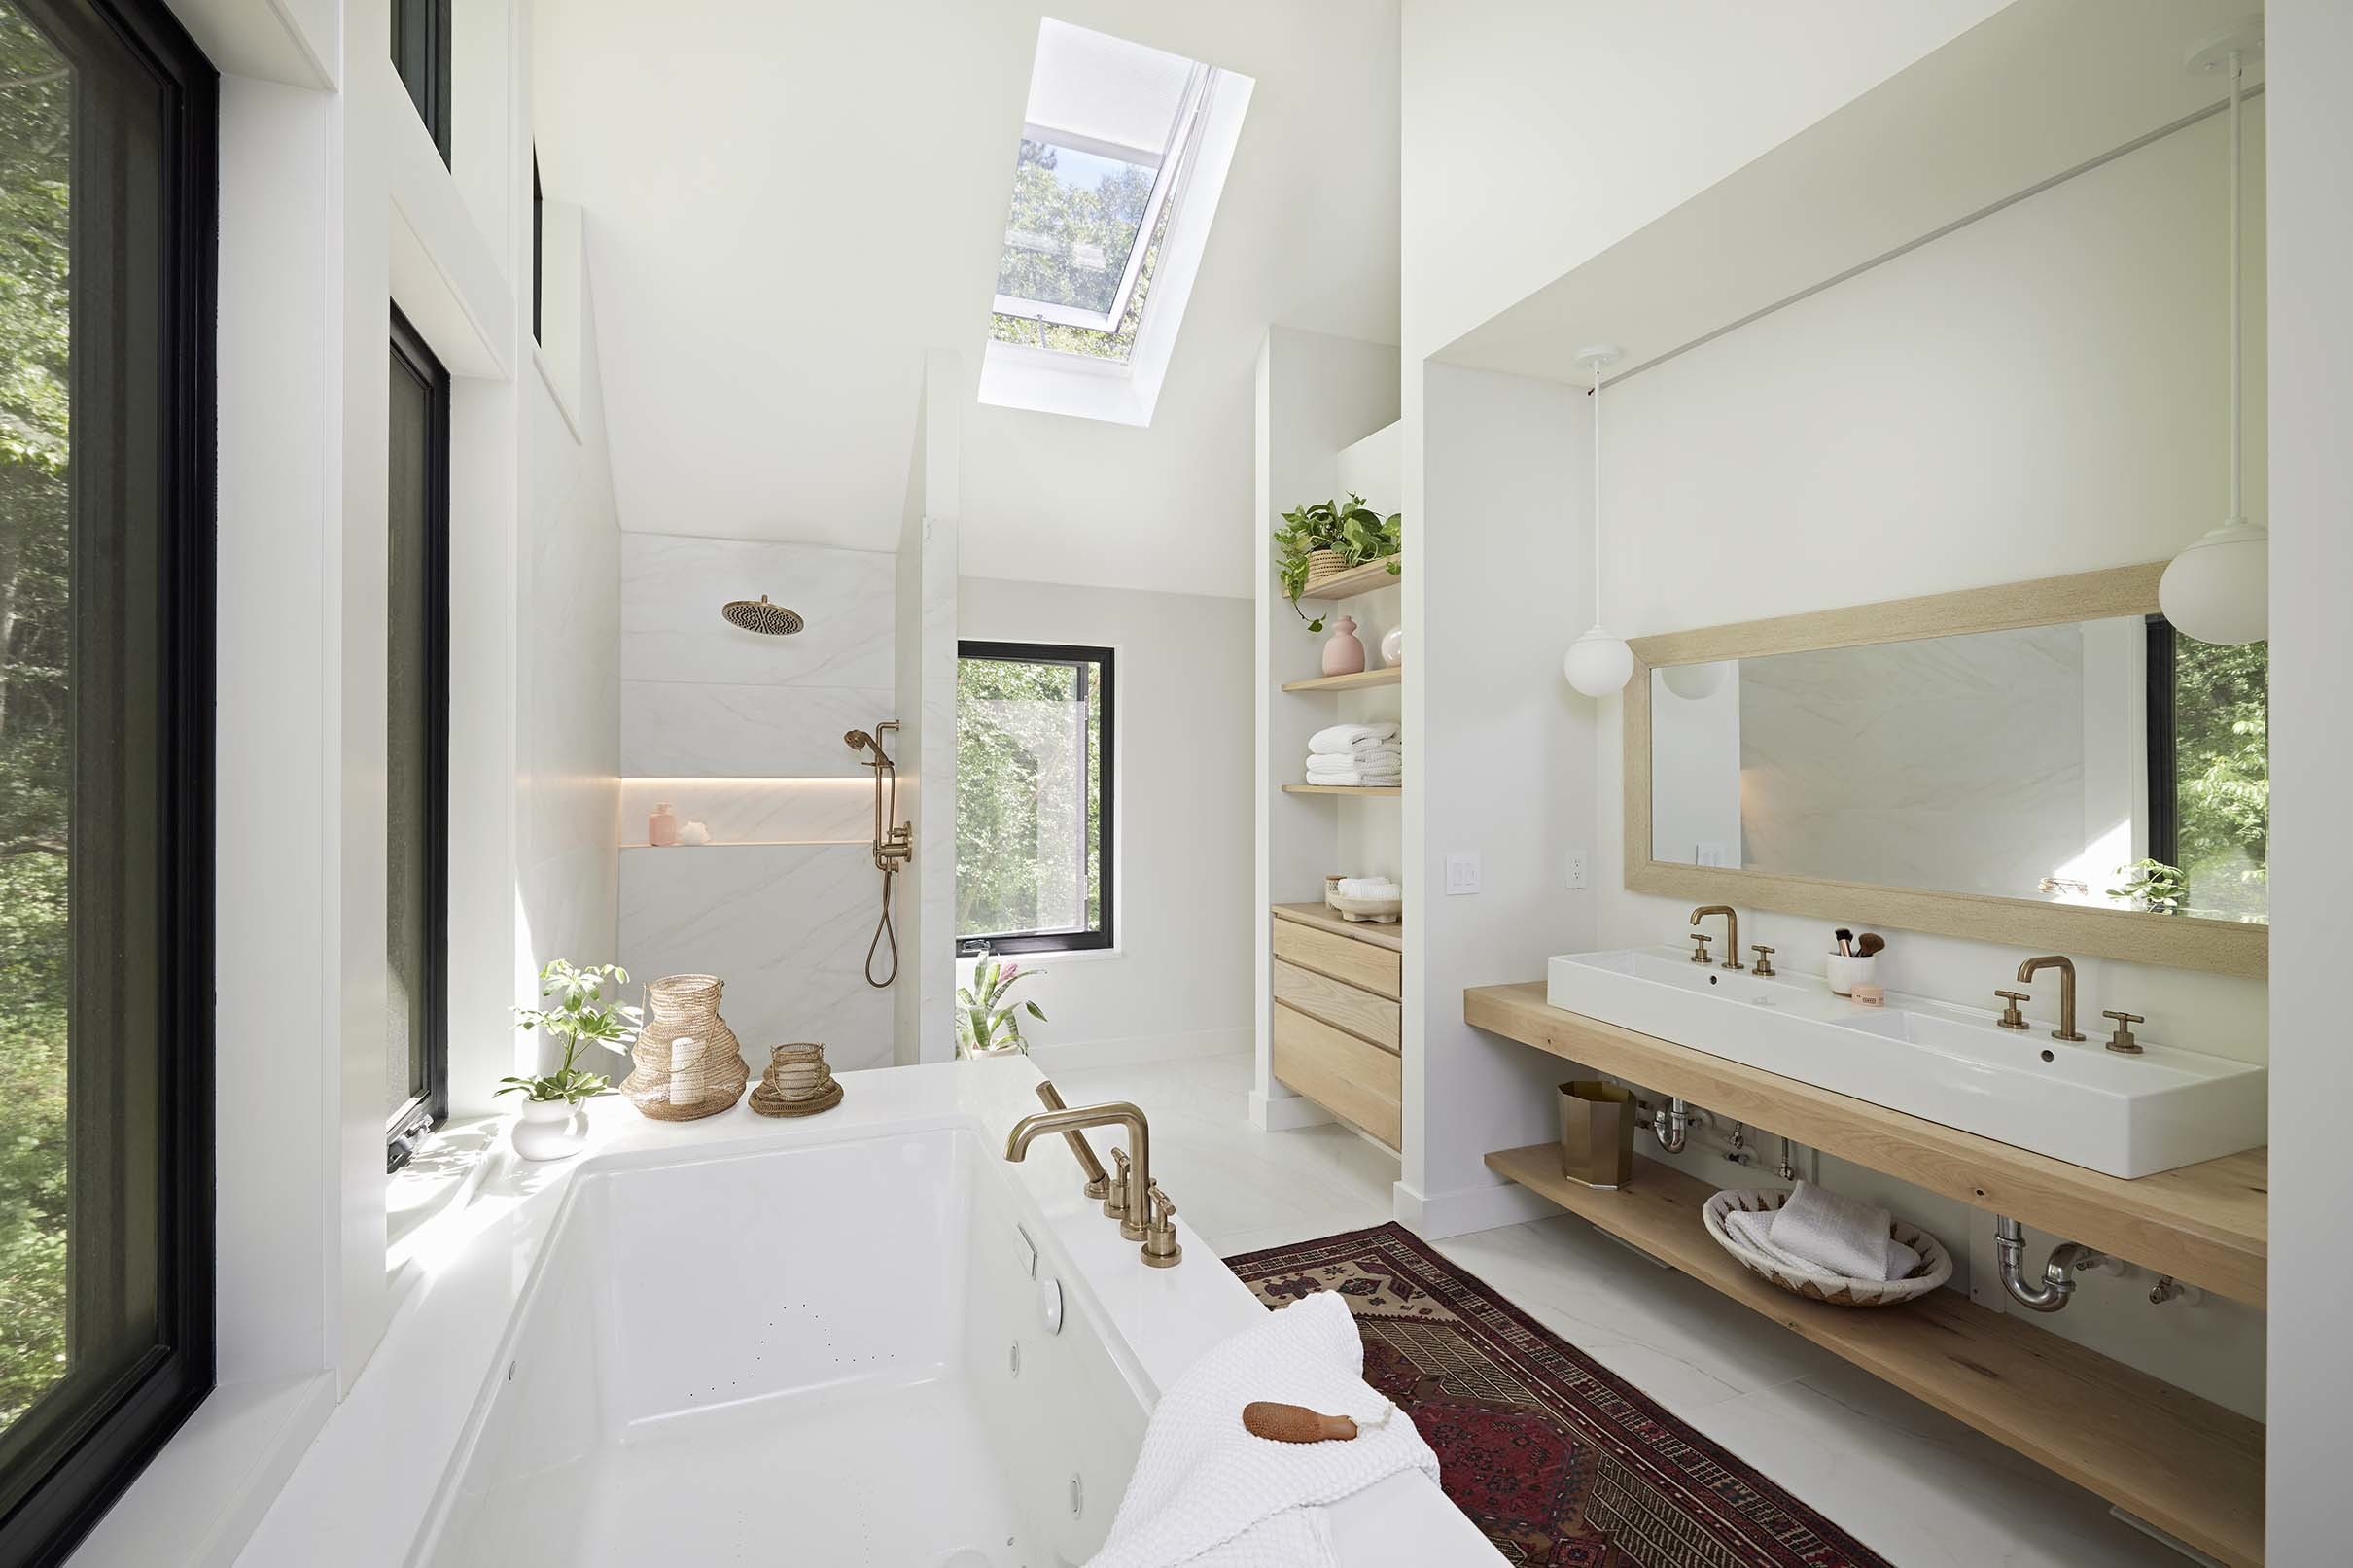 Galley style bathroom with a skylight over the shower and a long vanity